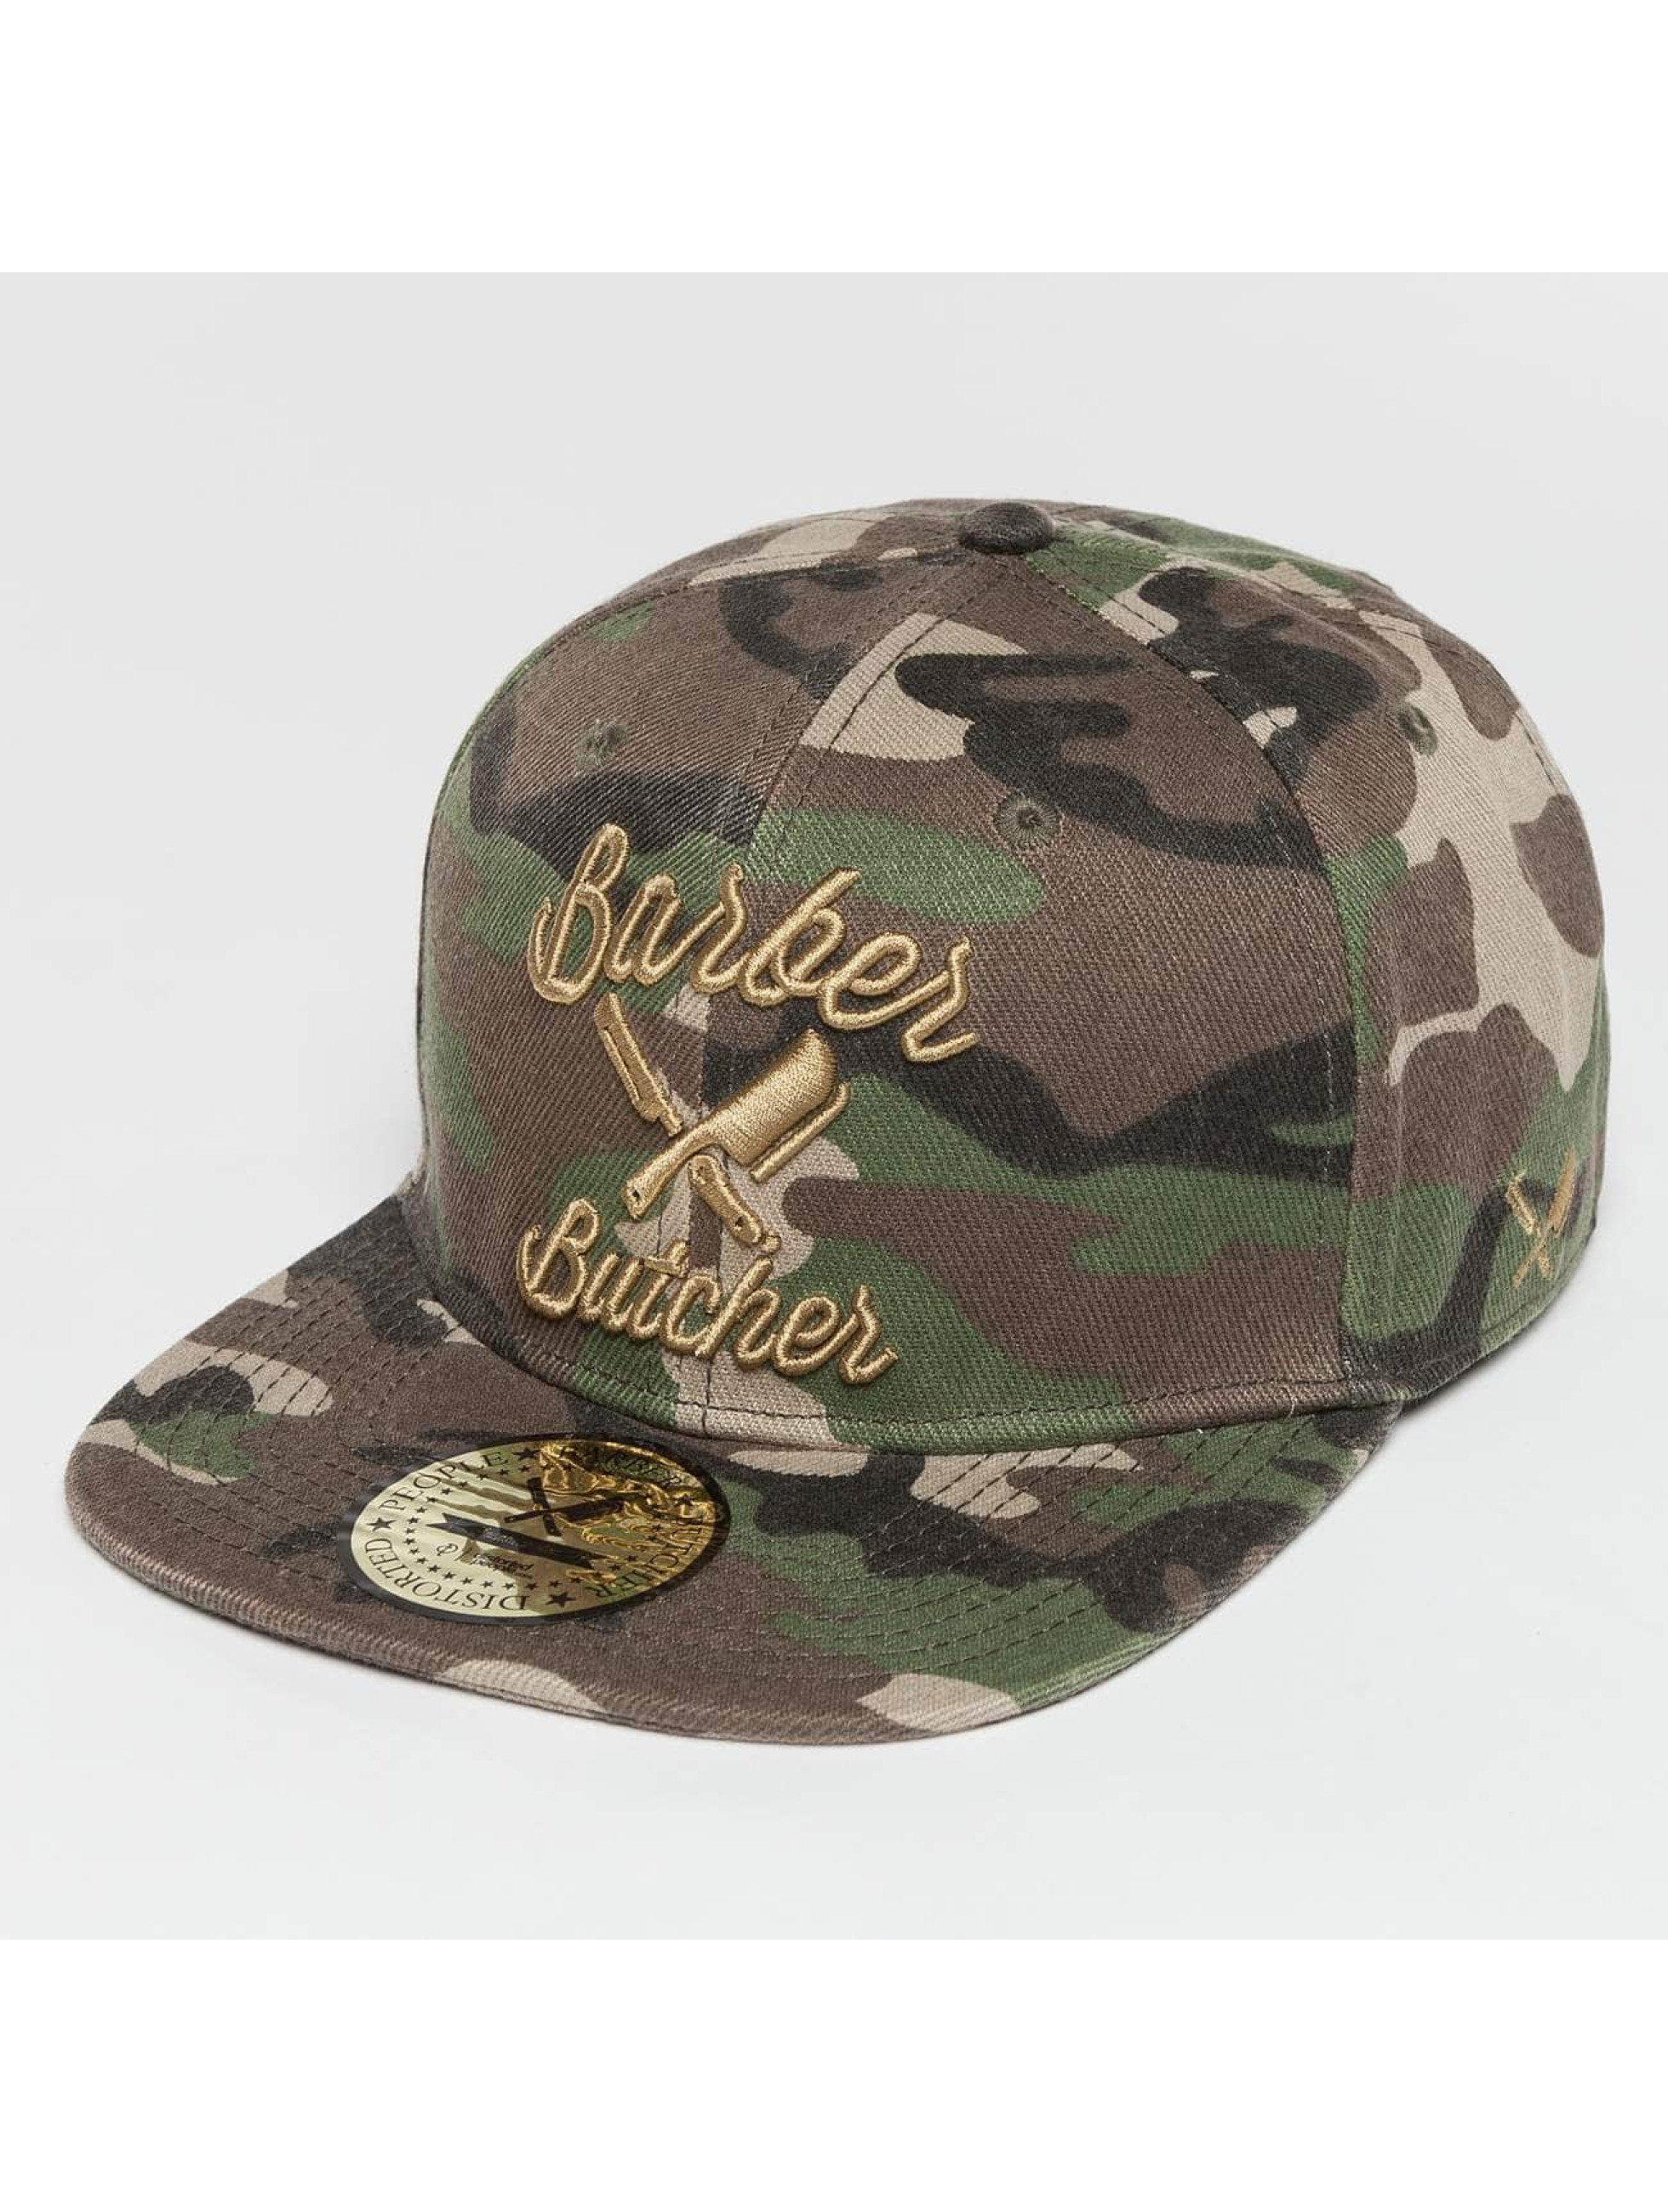 Distorted People Snapback Cap BB Blades camouflage